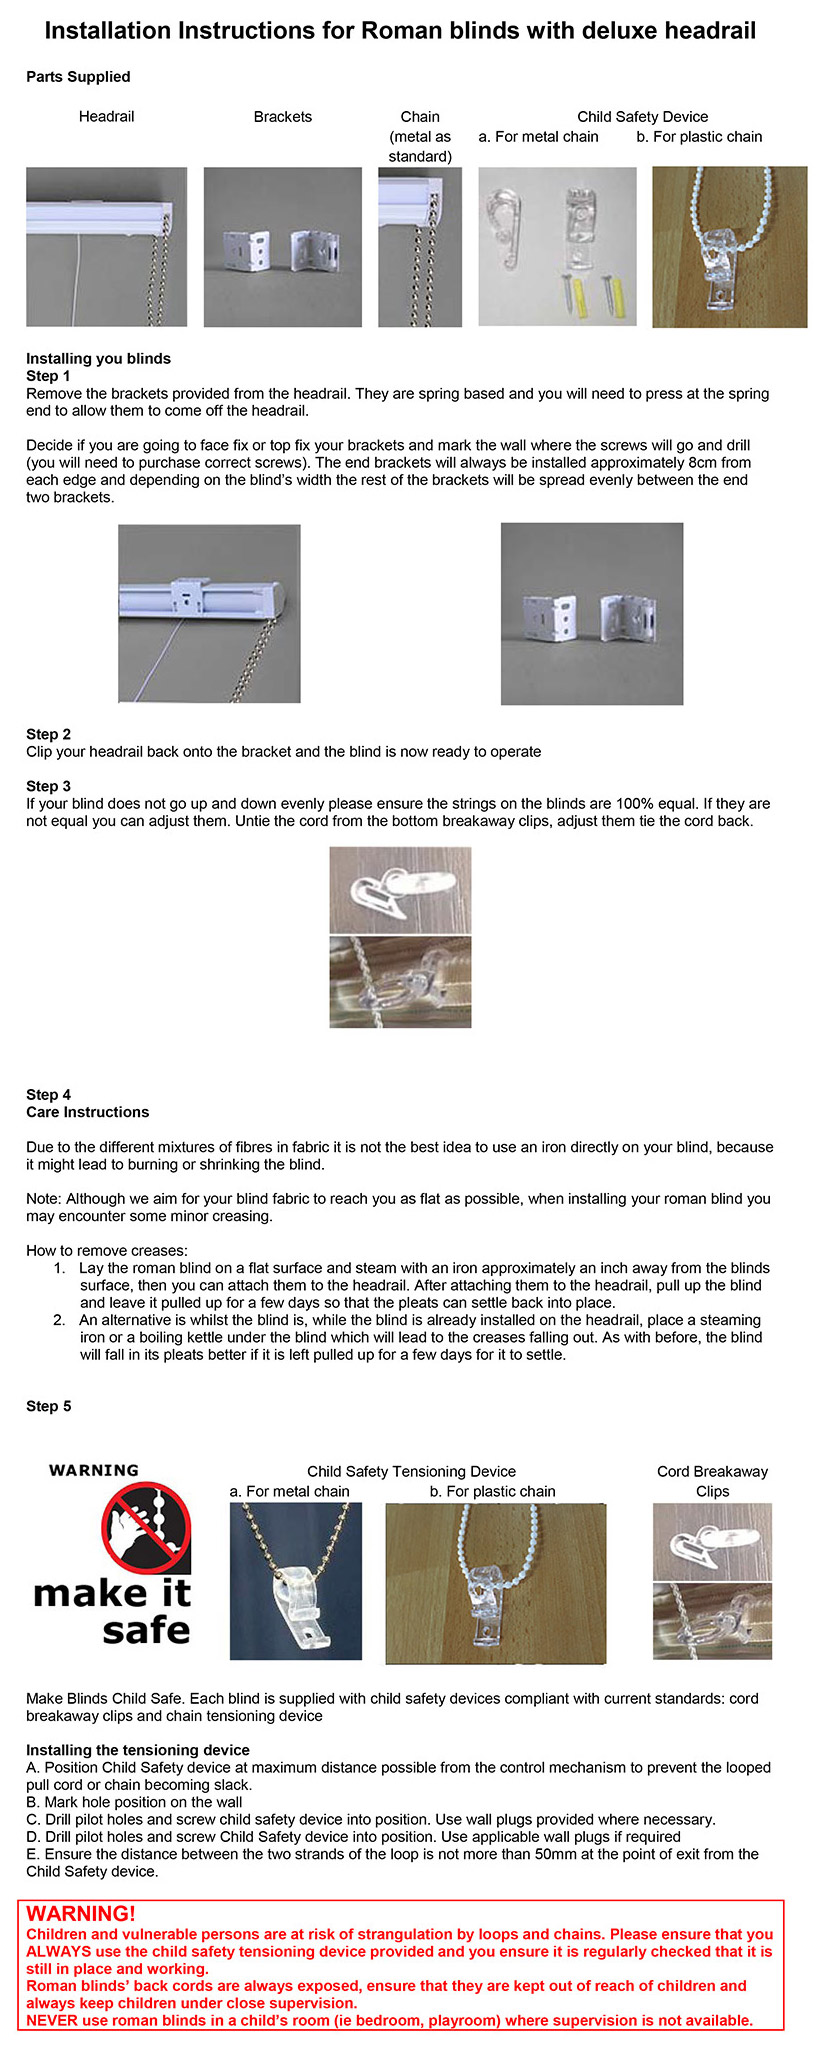 deluxe headrail fitting instructions. Black Bedroom Furniture Sets. Home Design Ideas